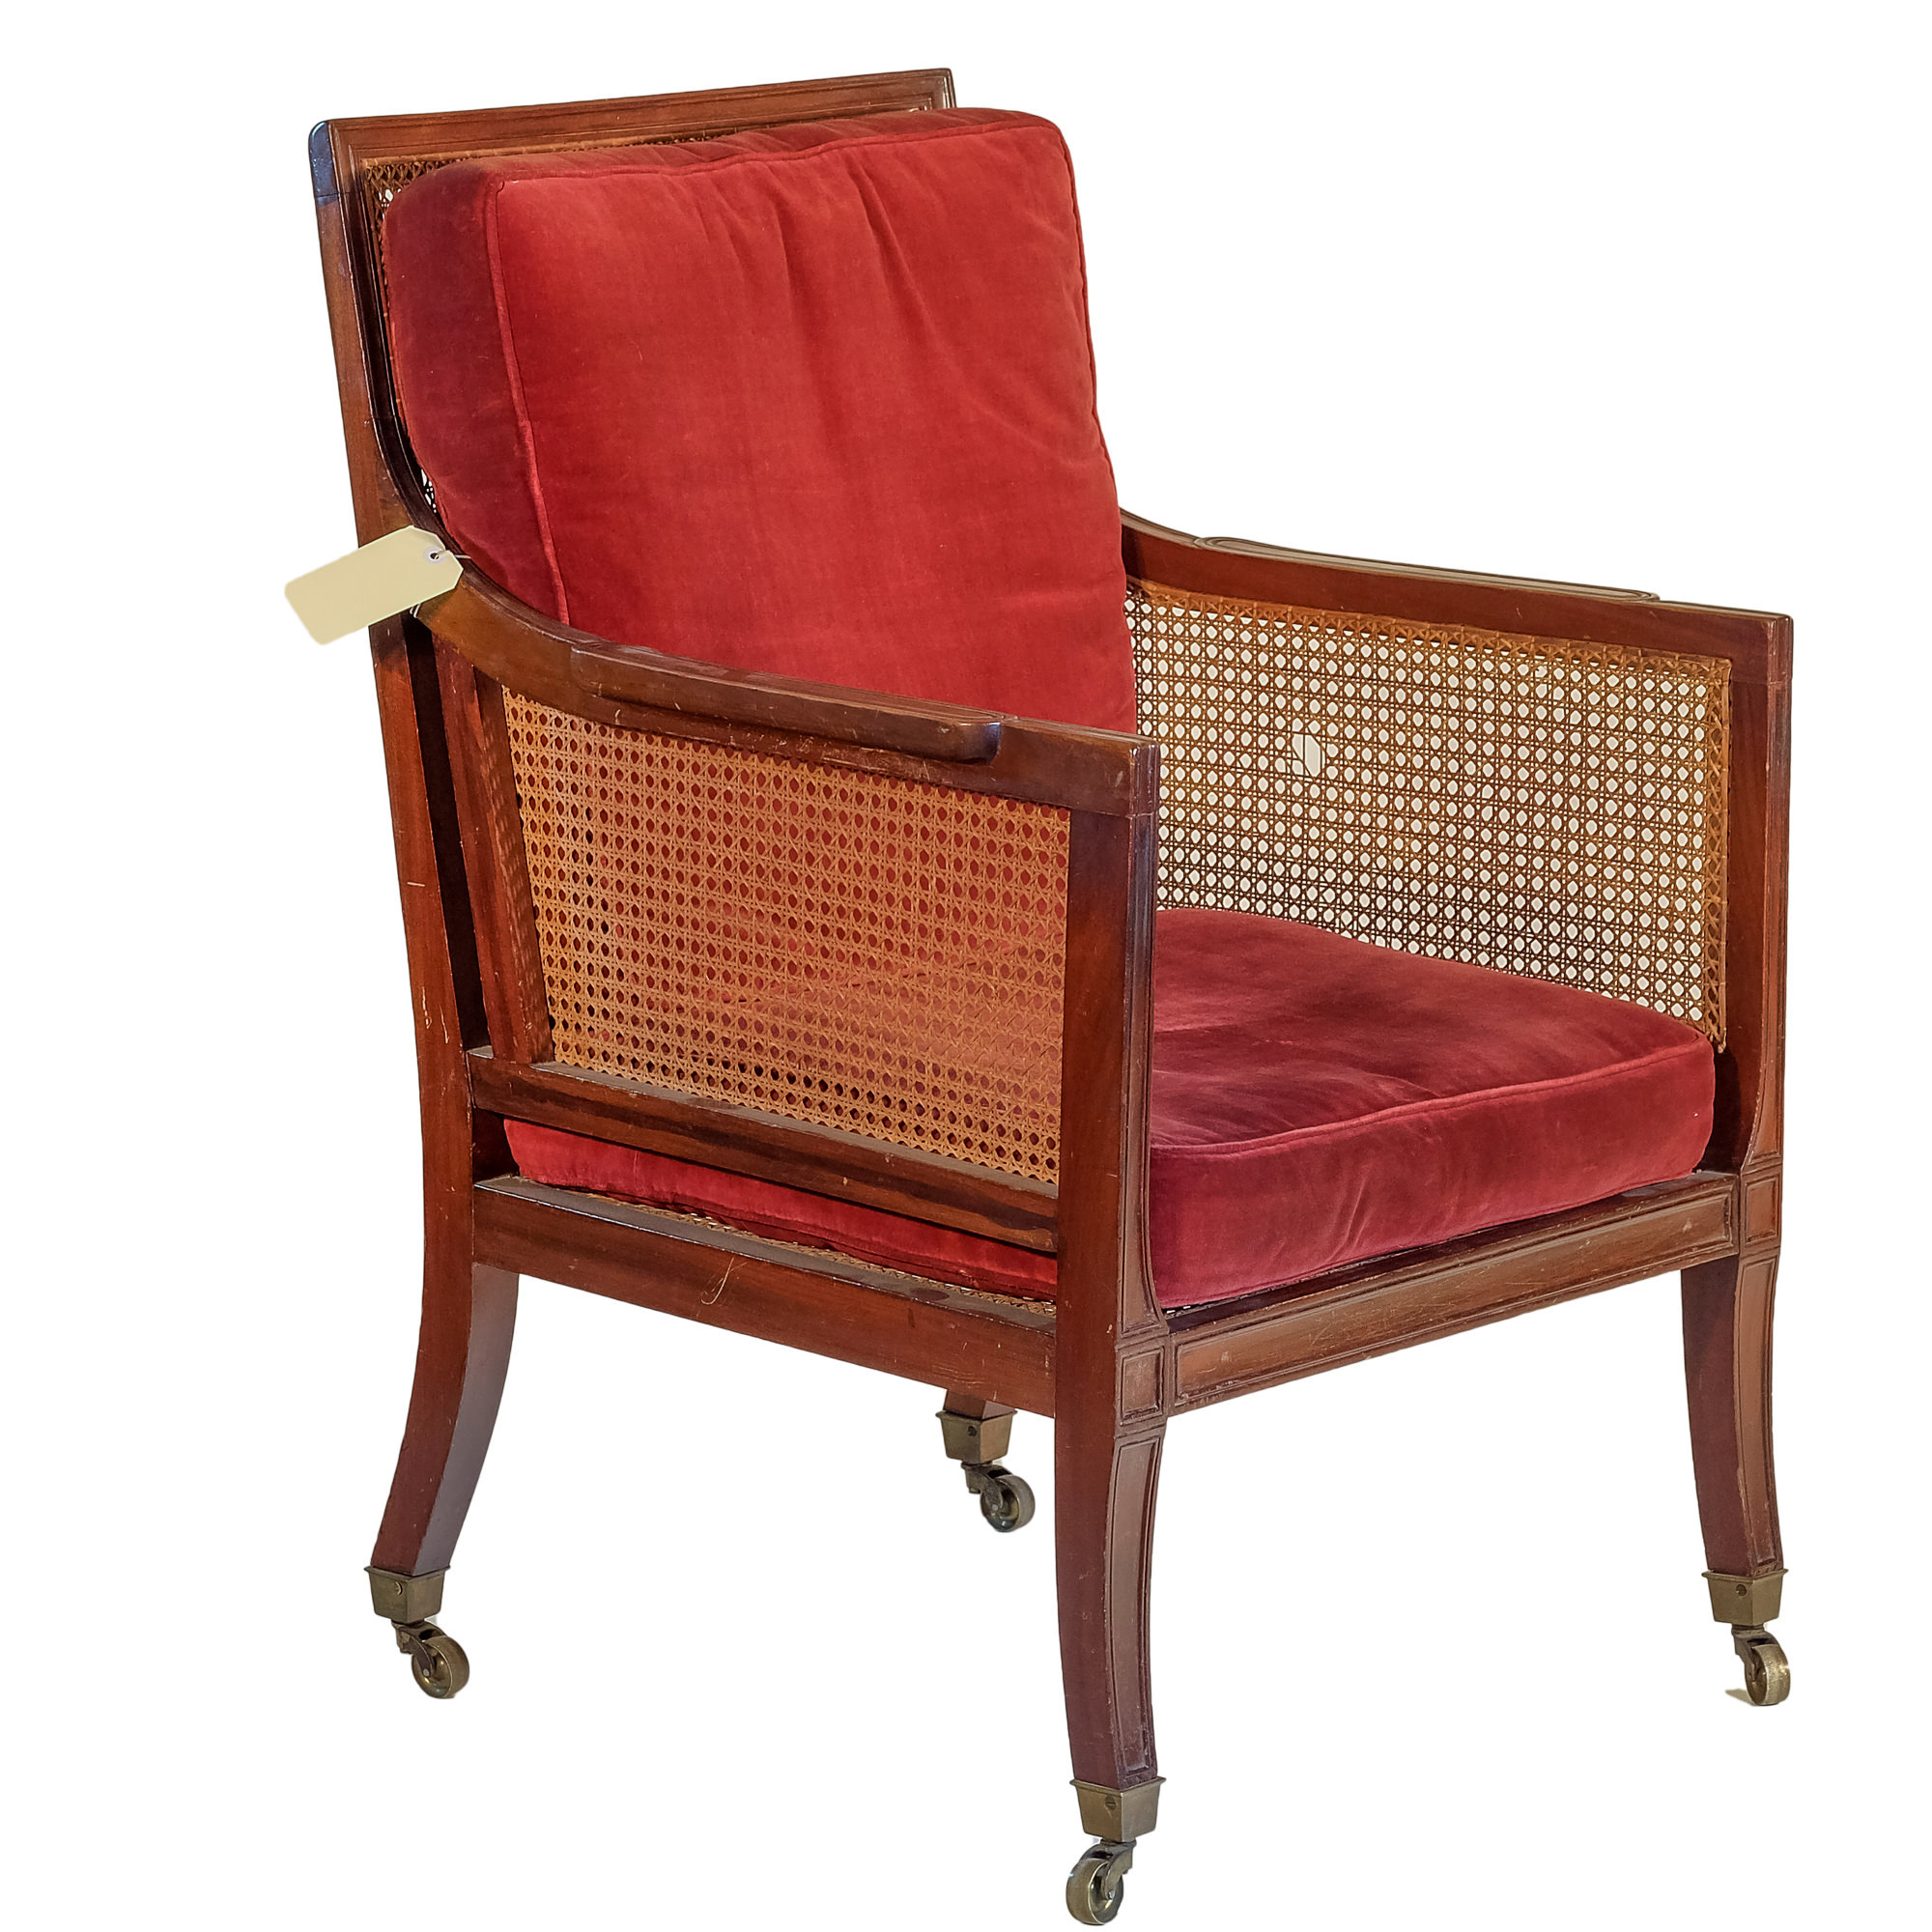 'Regency Period Caned Mahogany Drawing Room Chair Circa 1815'